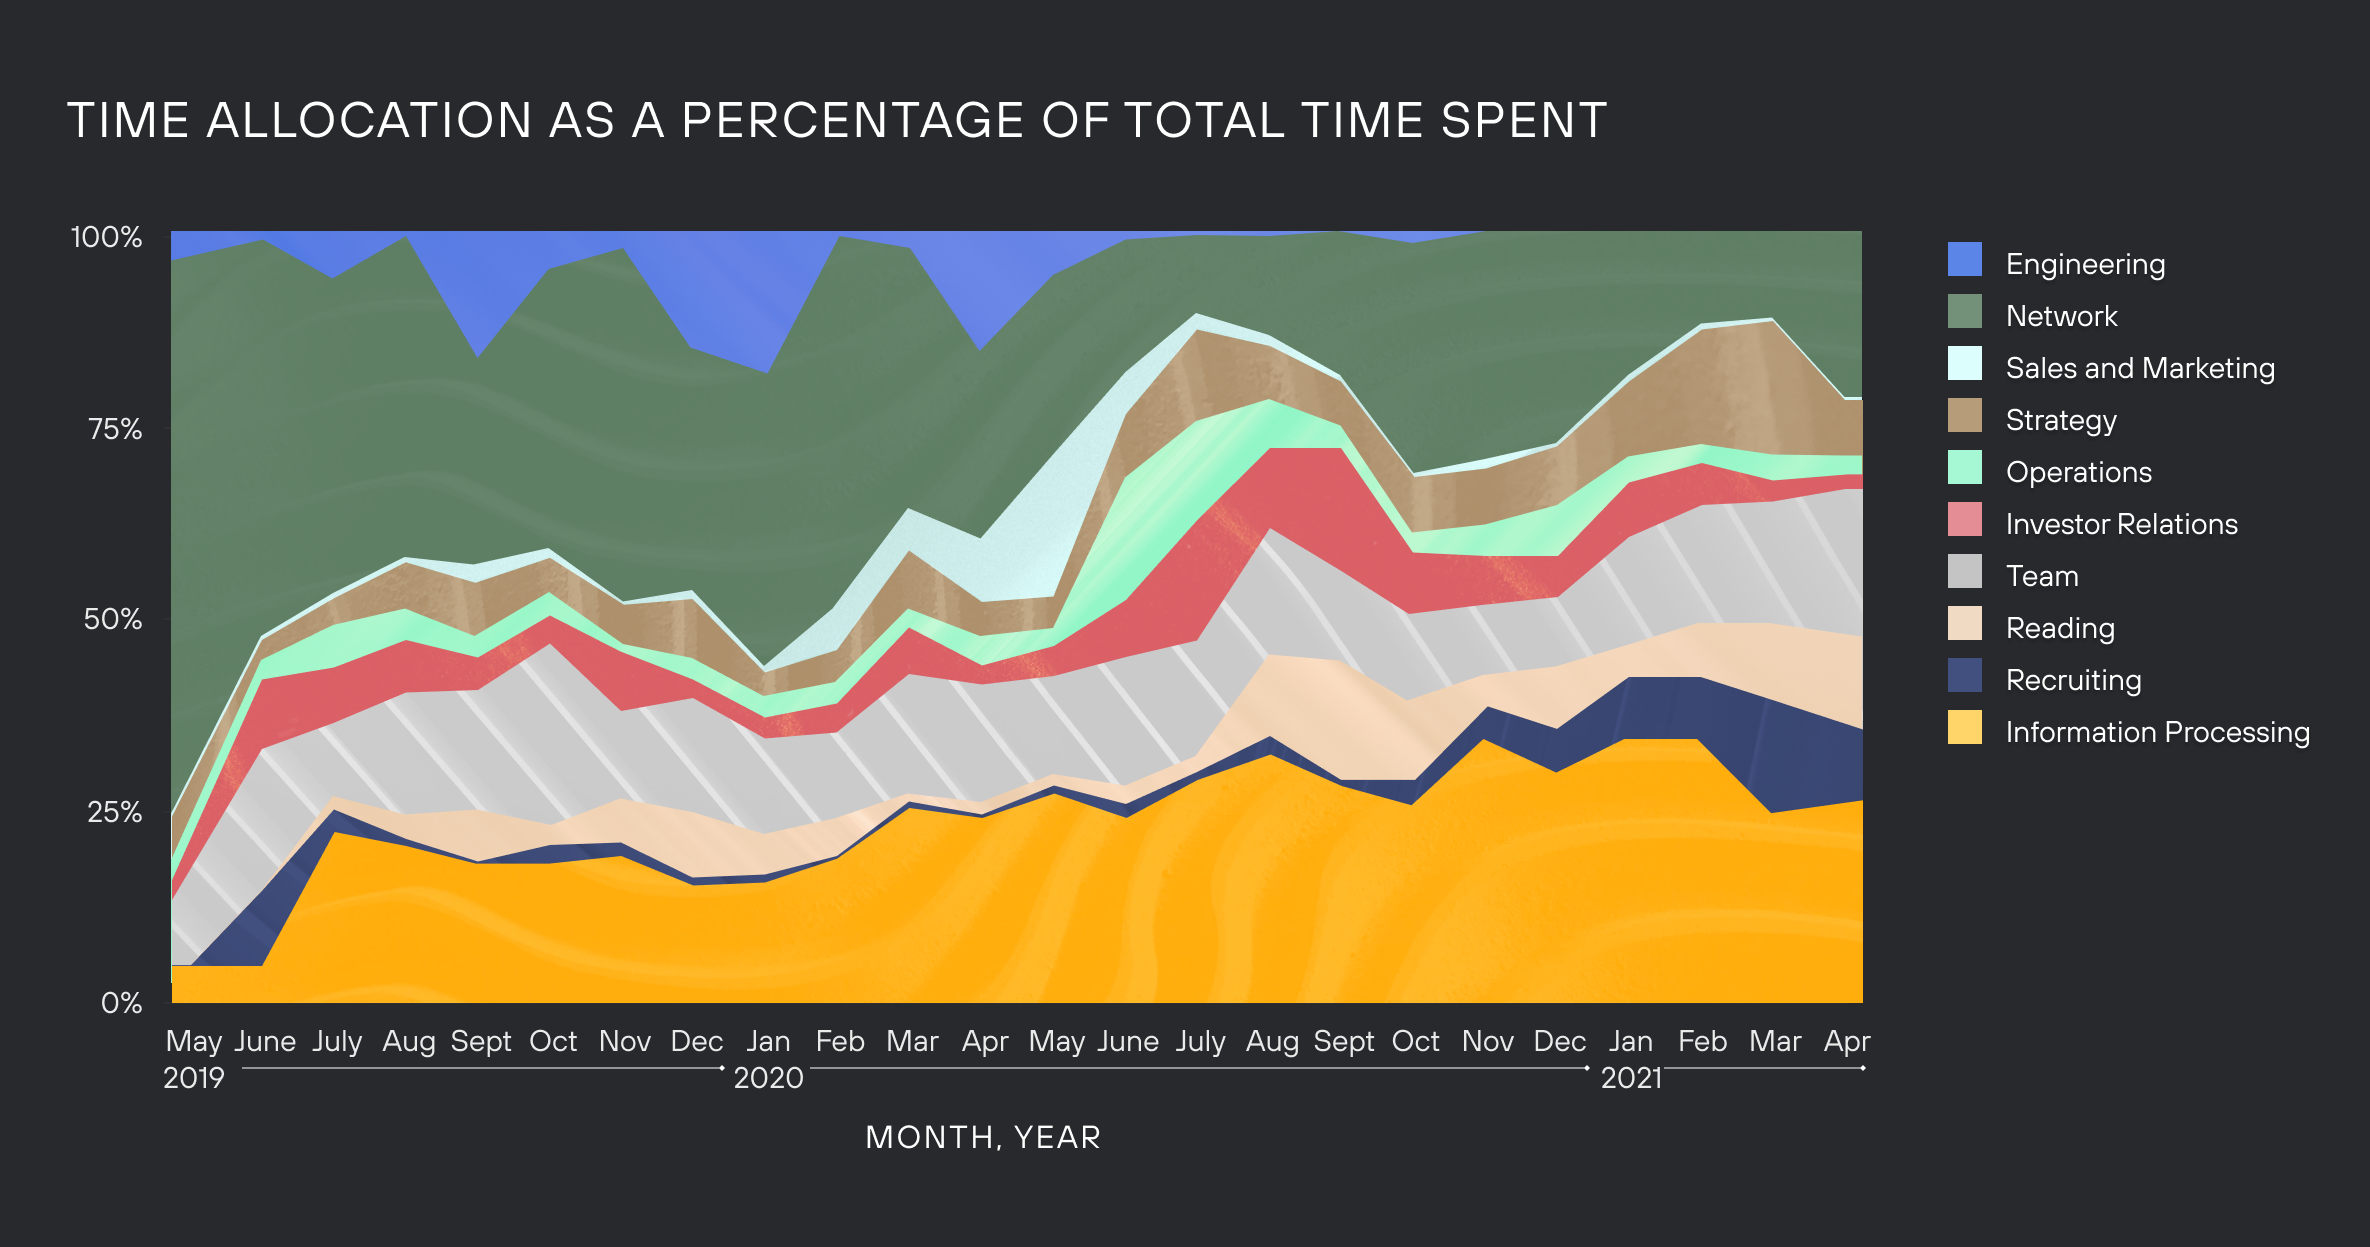 Graph of time allocation as a percentage of total time spent